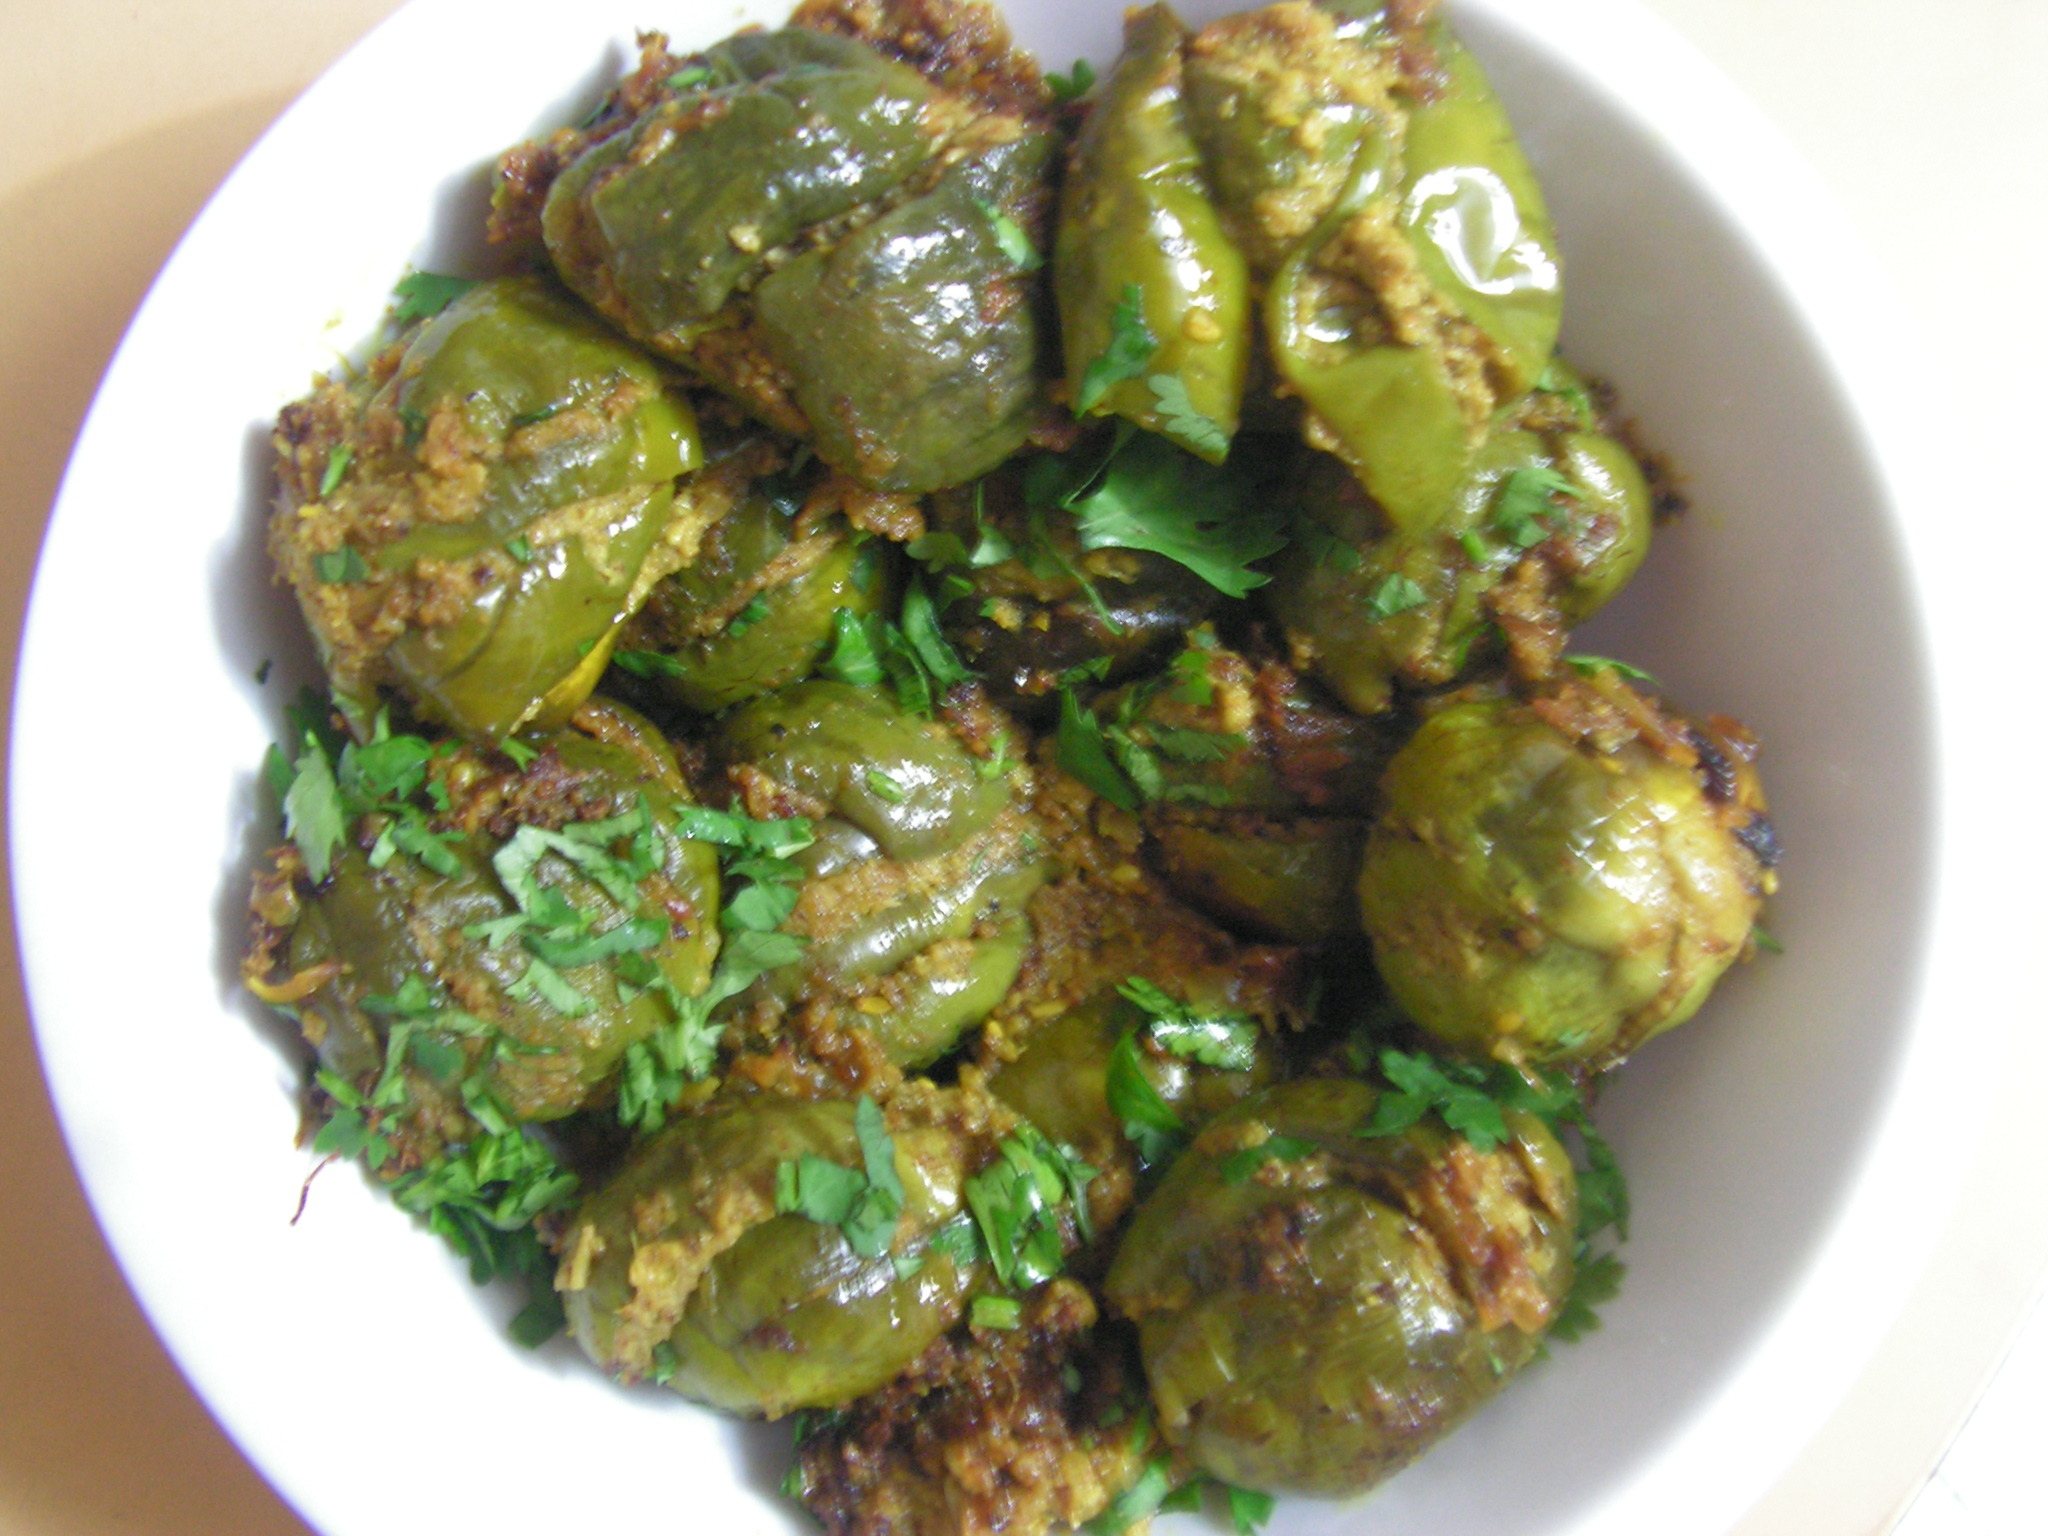 Yengai stuffed eggplant brinjal in northern karnataka style garnished with cilantro forumfinder Images